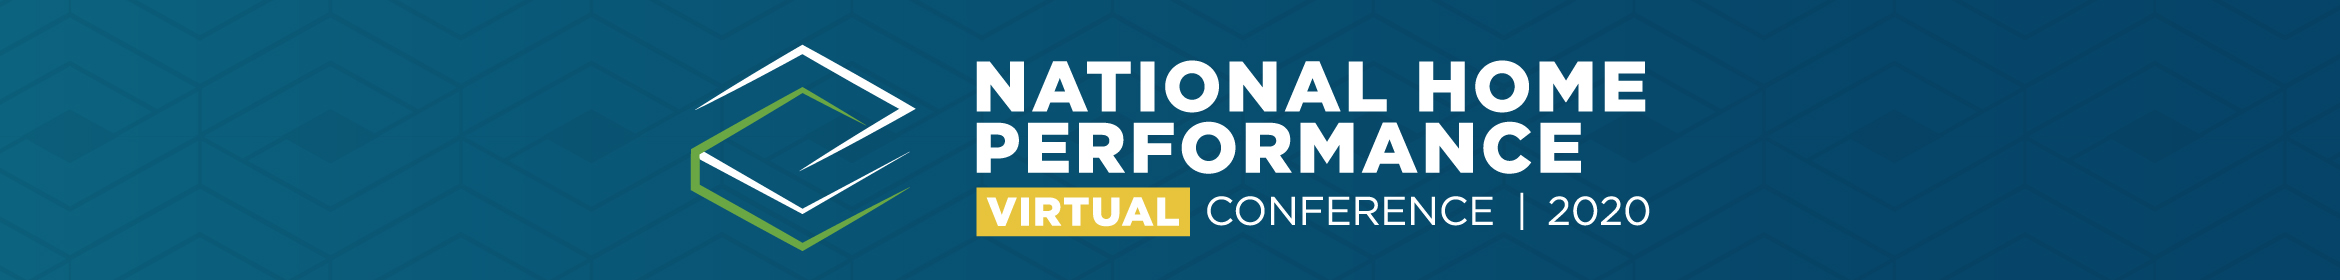 2020 National Home Performance Virtual Conference Main banner